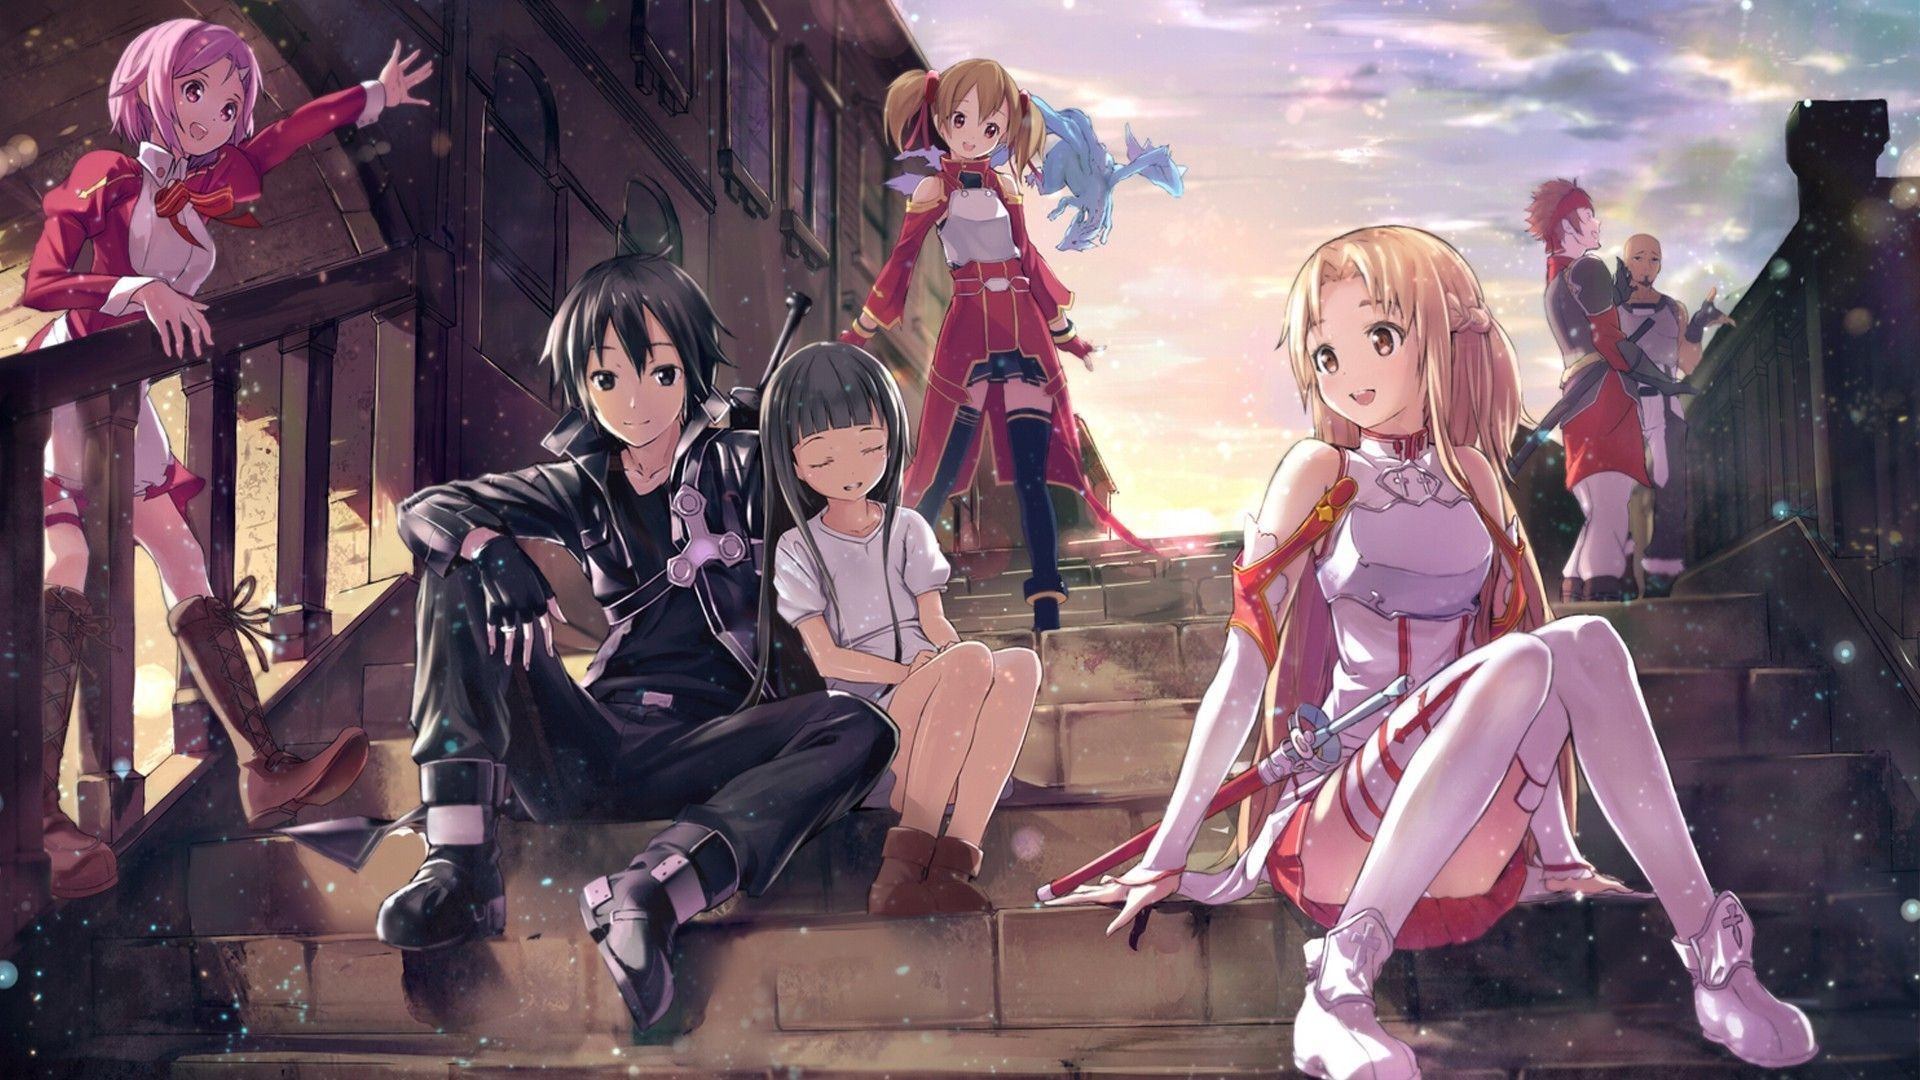 1920x1080 Sword Art Online Wallpaper Full Hd